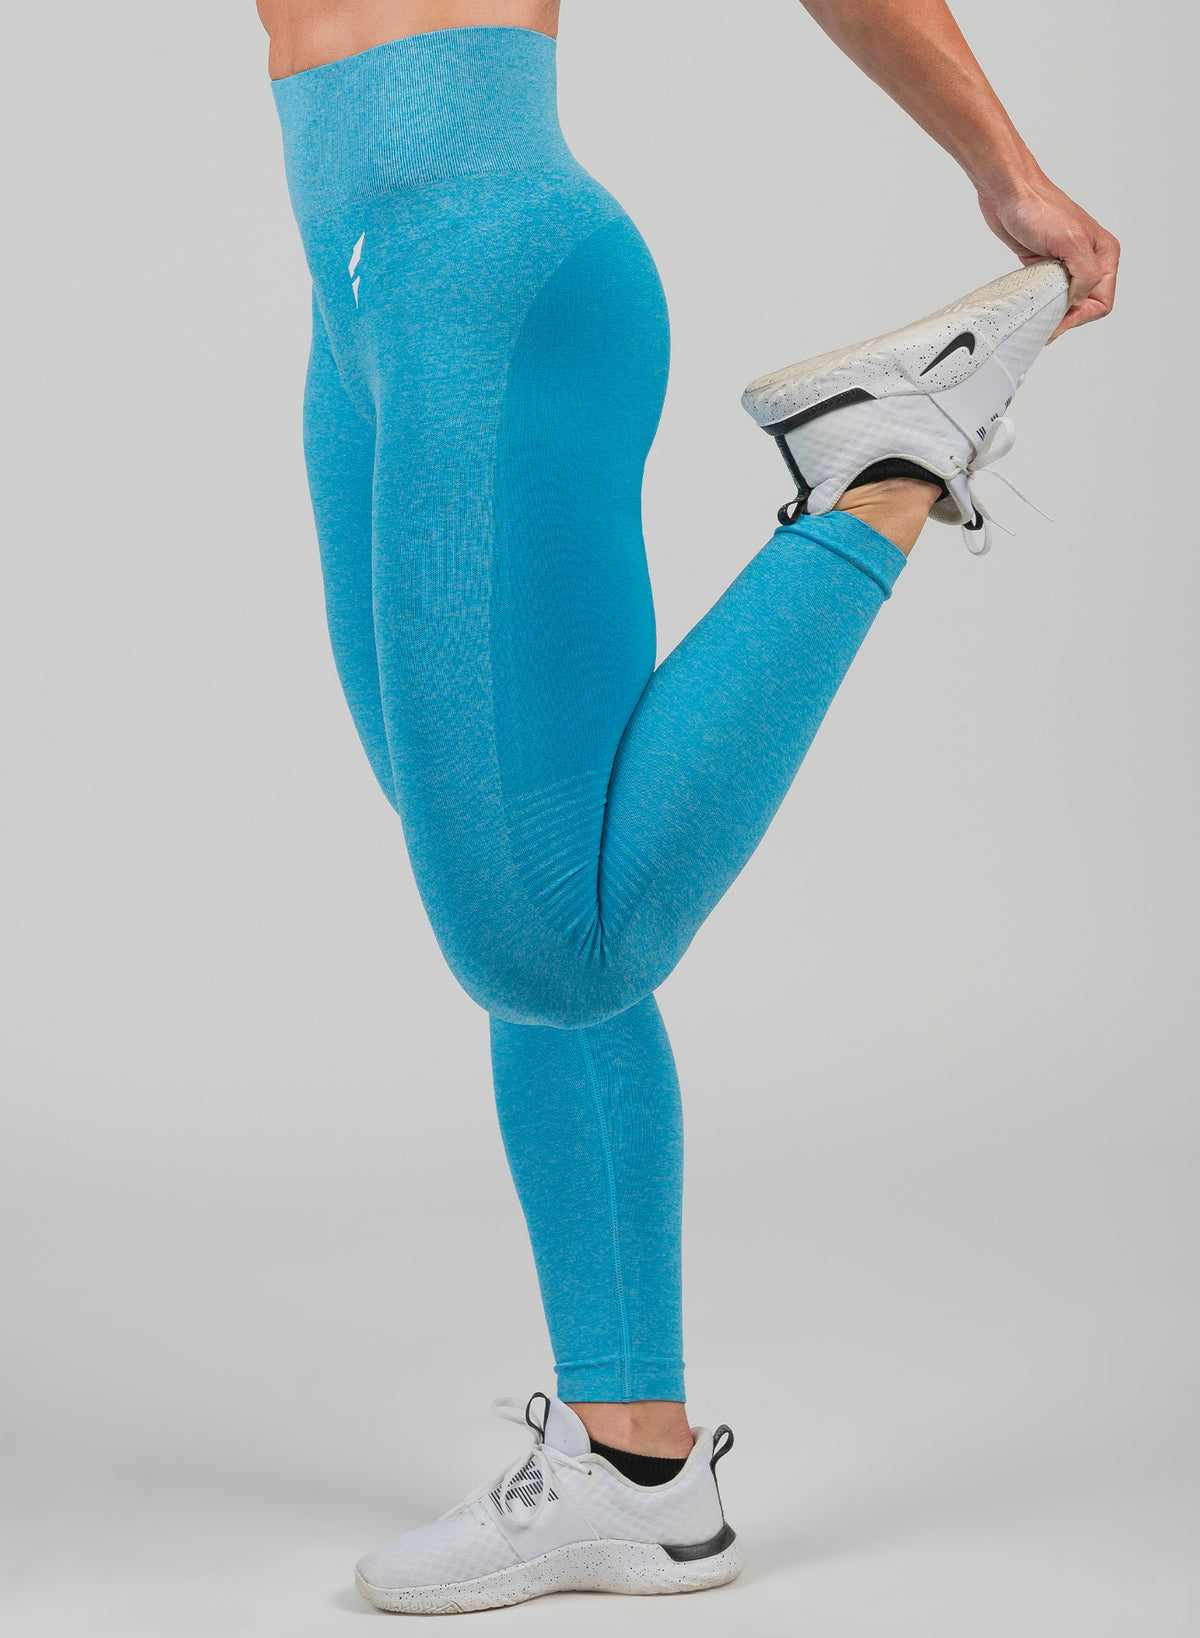 FNF SEAMLESS TIGHTS - BLUE